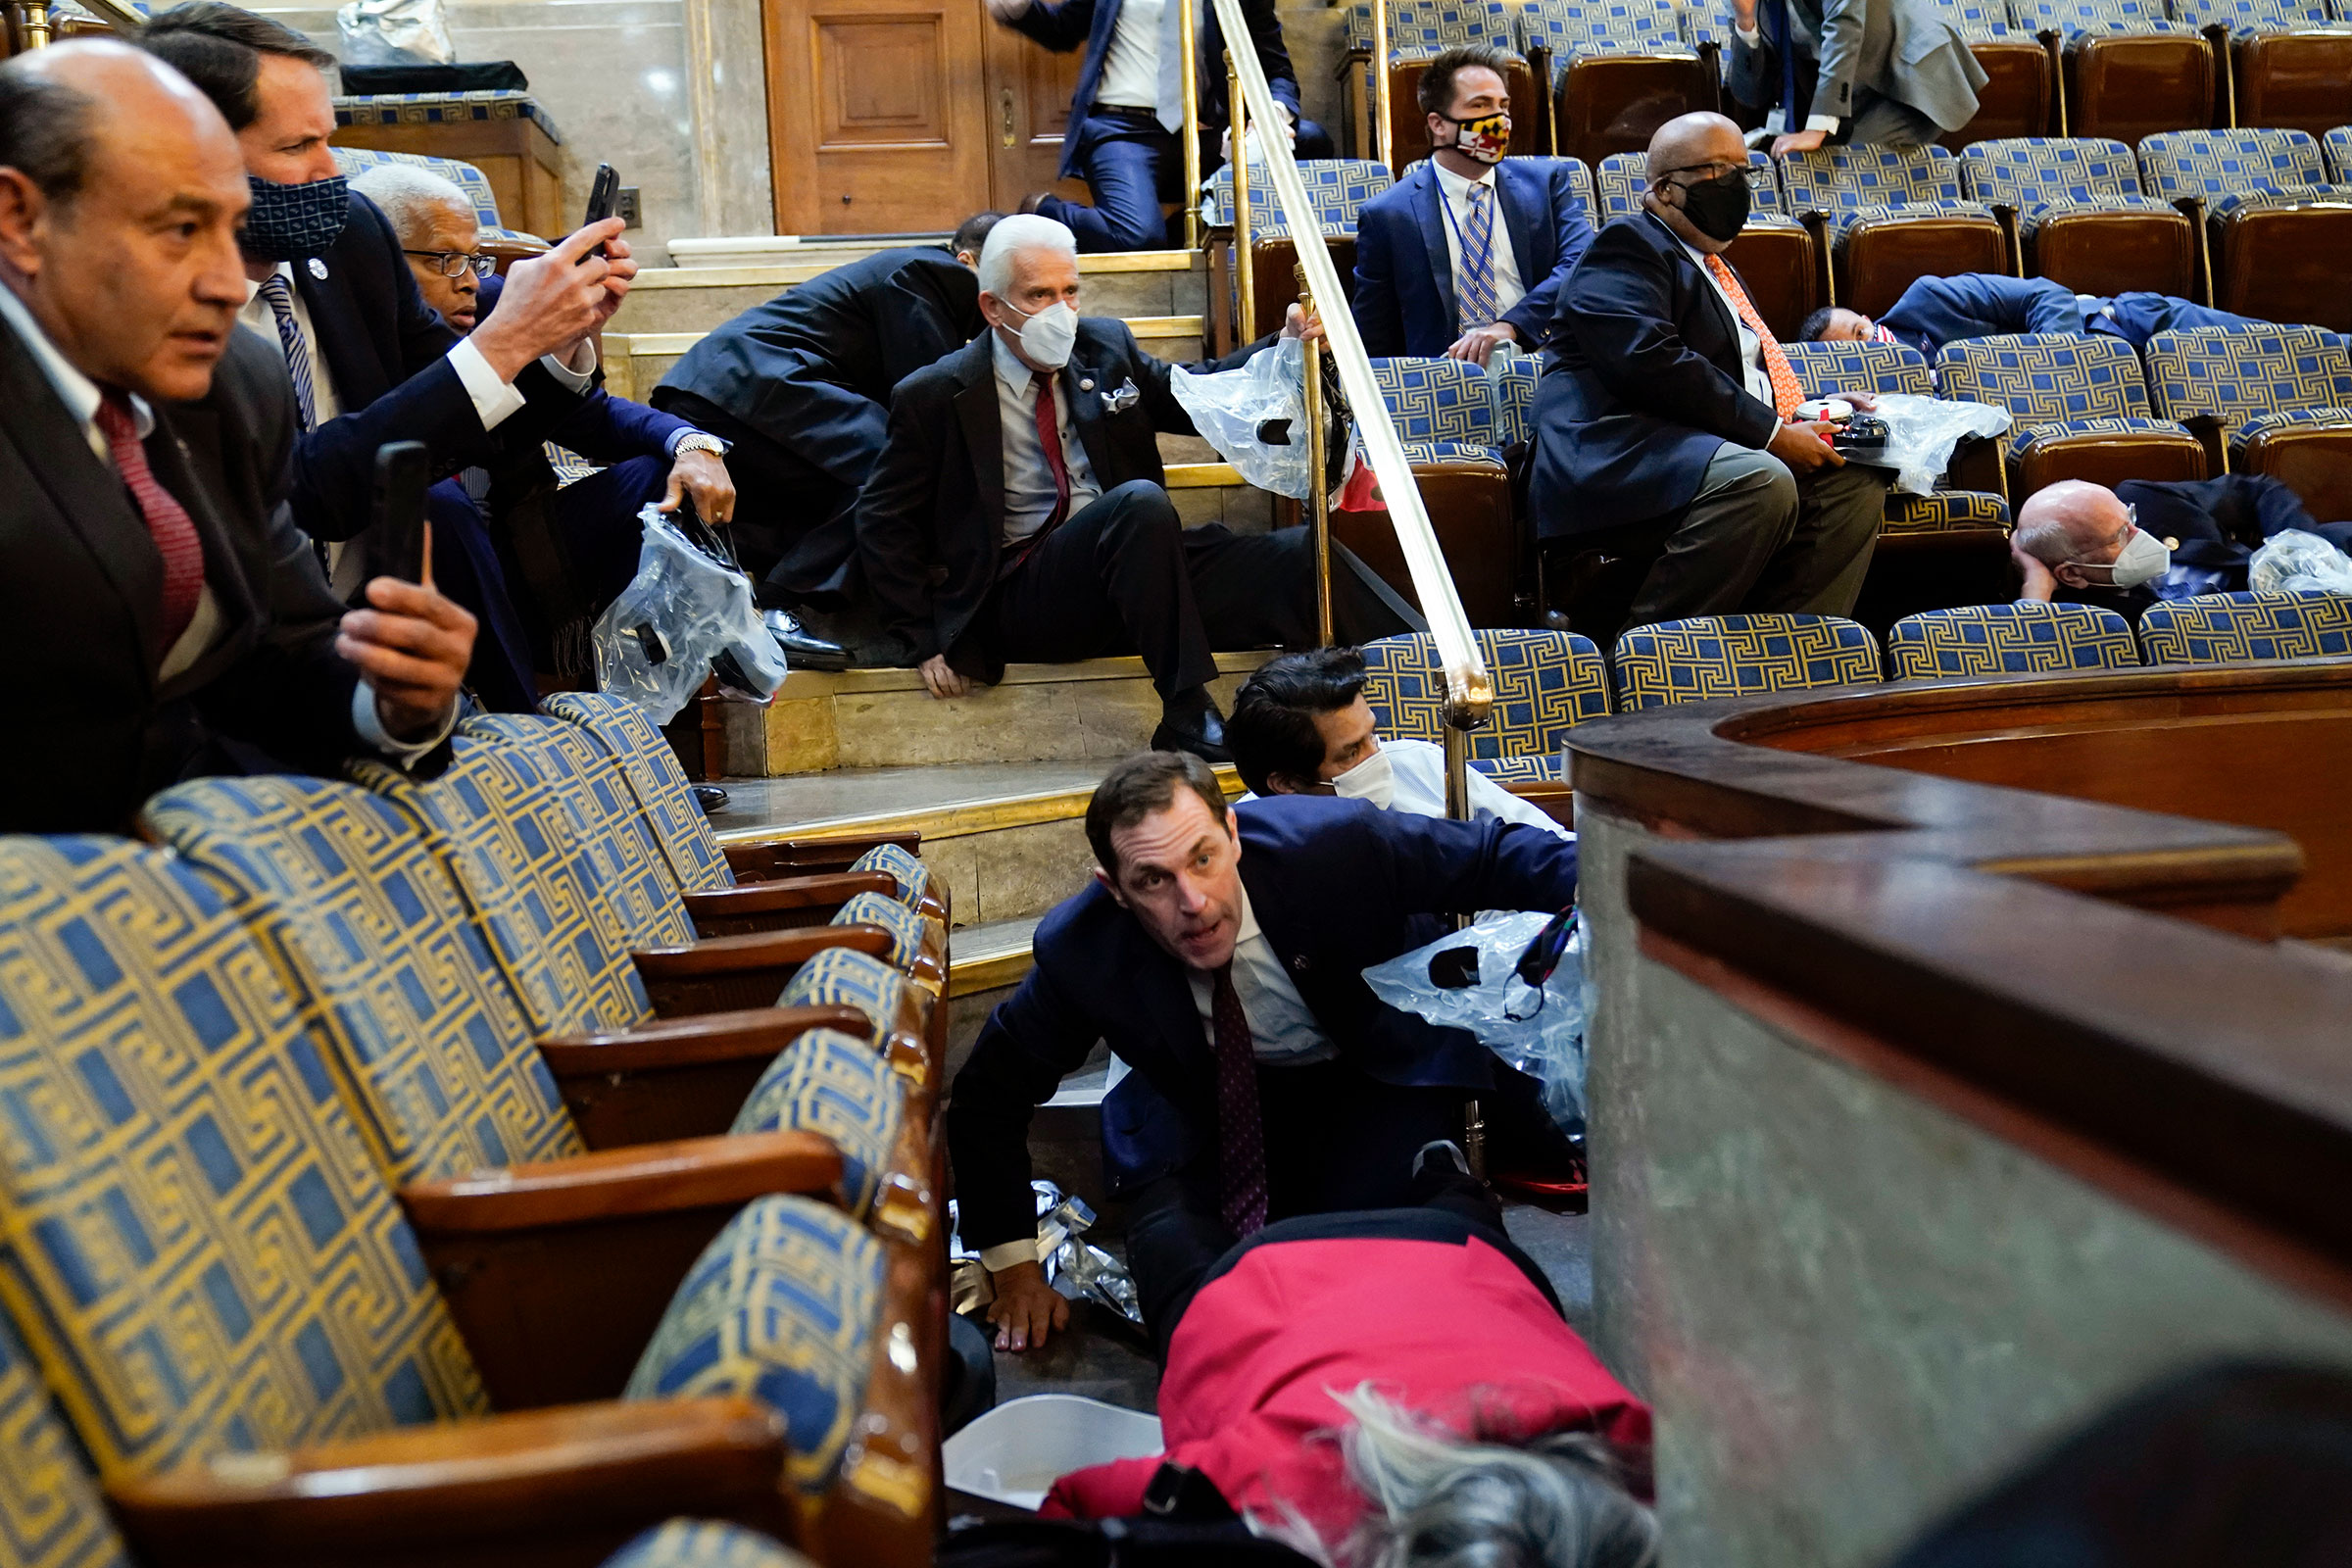 Lawmakers and staff shelter as protesters besiege the House Chamber.